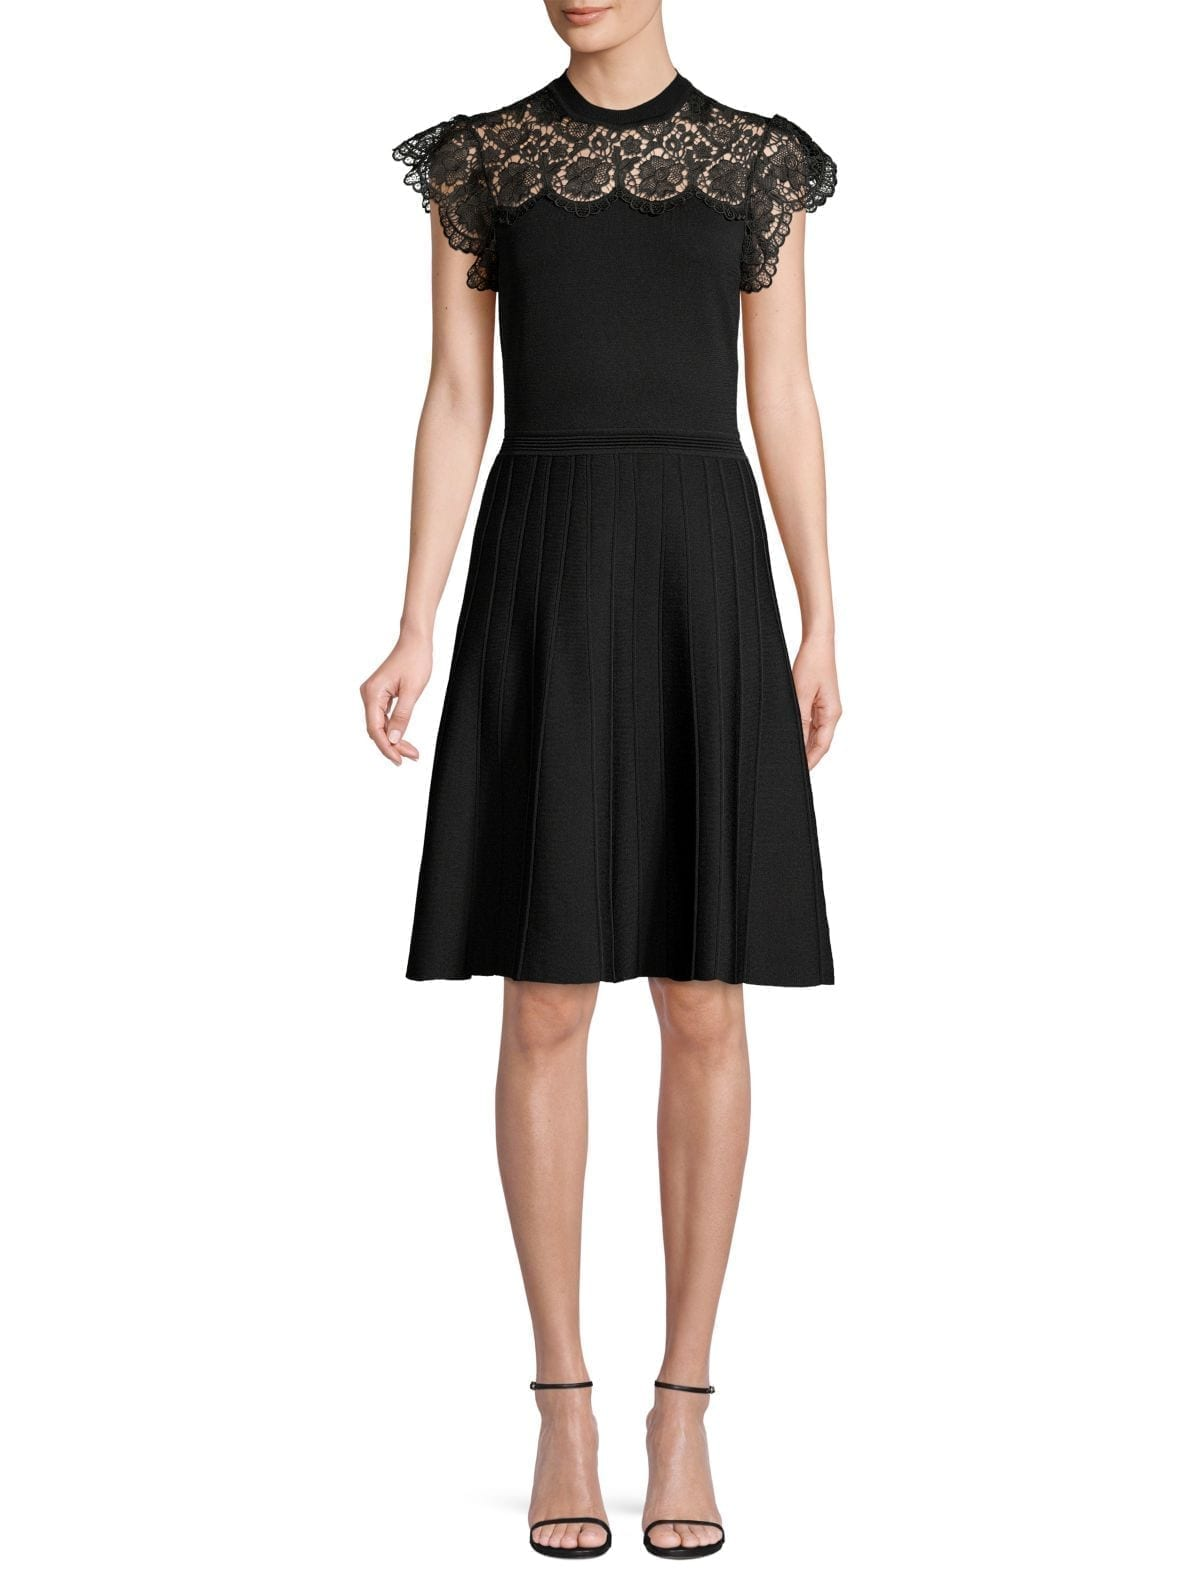 SHOSHANNA Sandra Lace-Yoke A-Line Dress